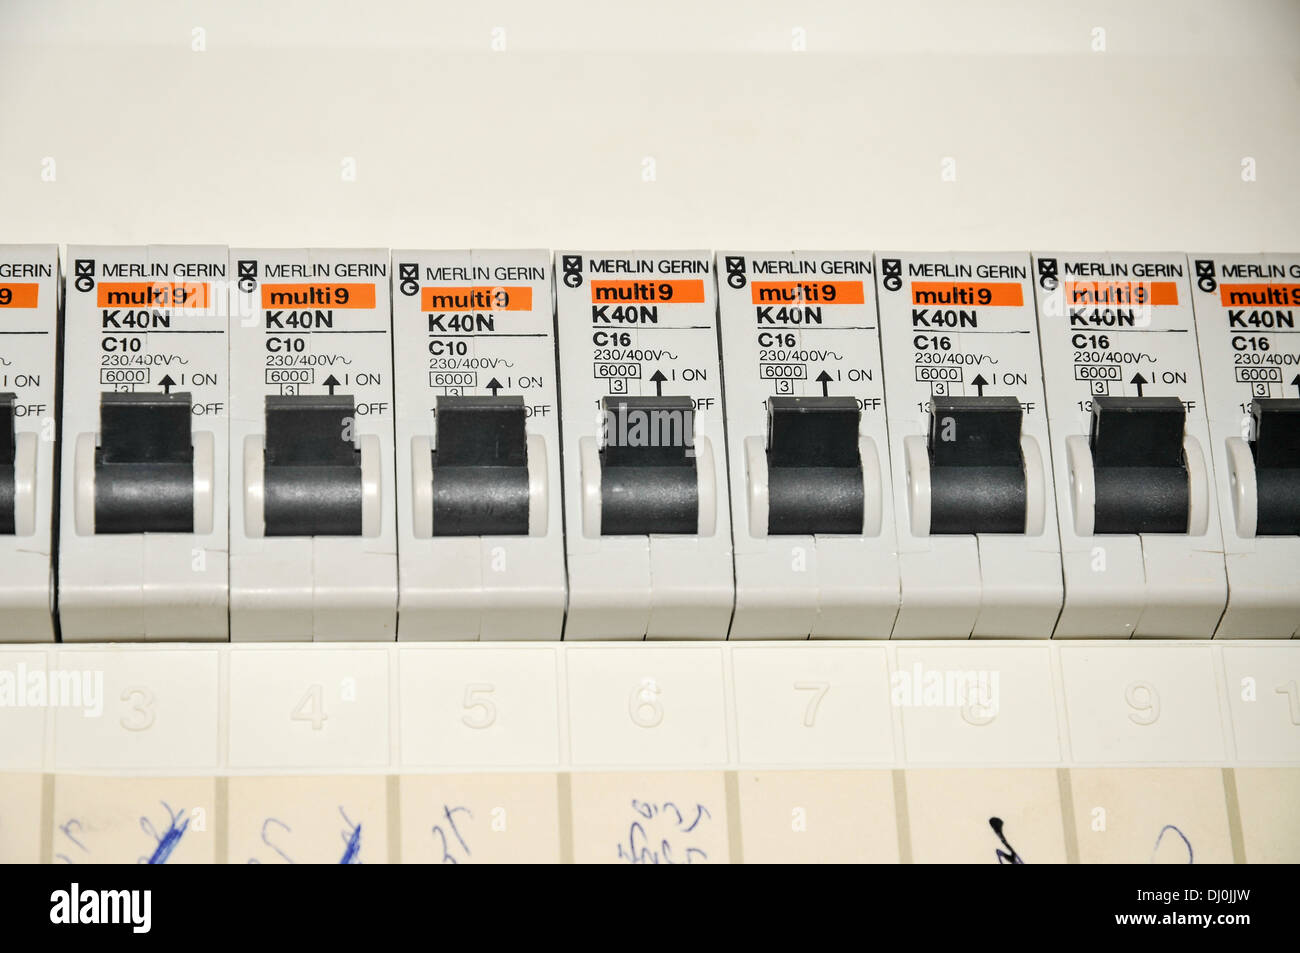 Fuse Box For Vector 550 Trusted Wiring Diagram Bennche Domestic Stock Photos Images Alamy Close